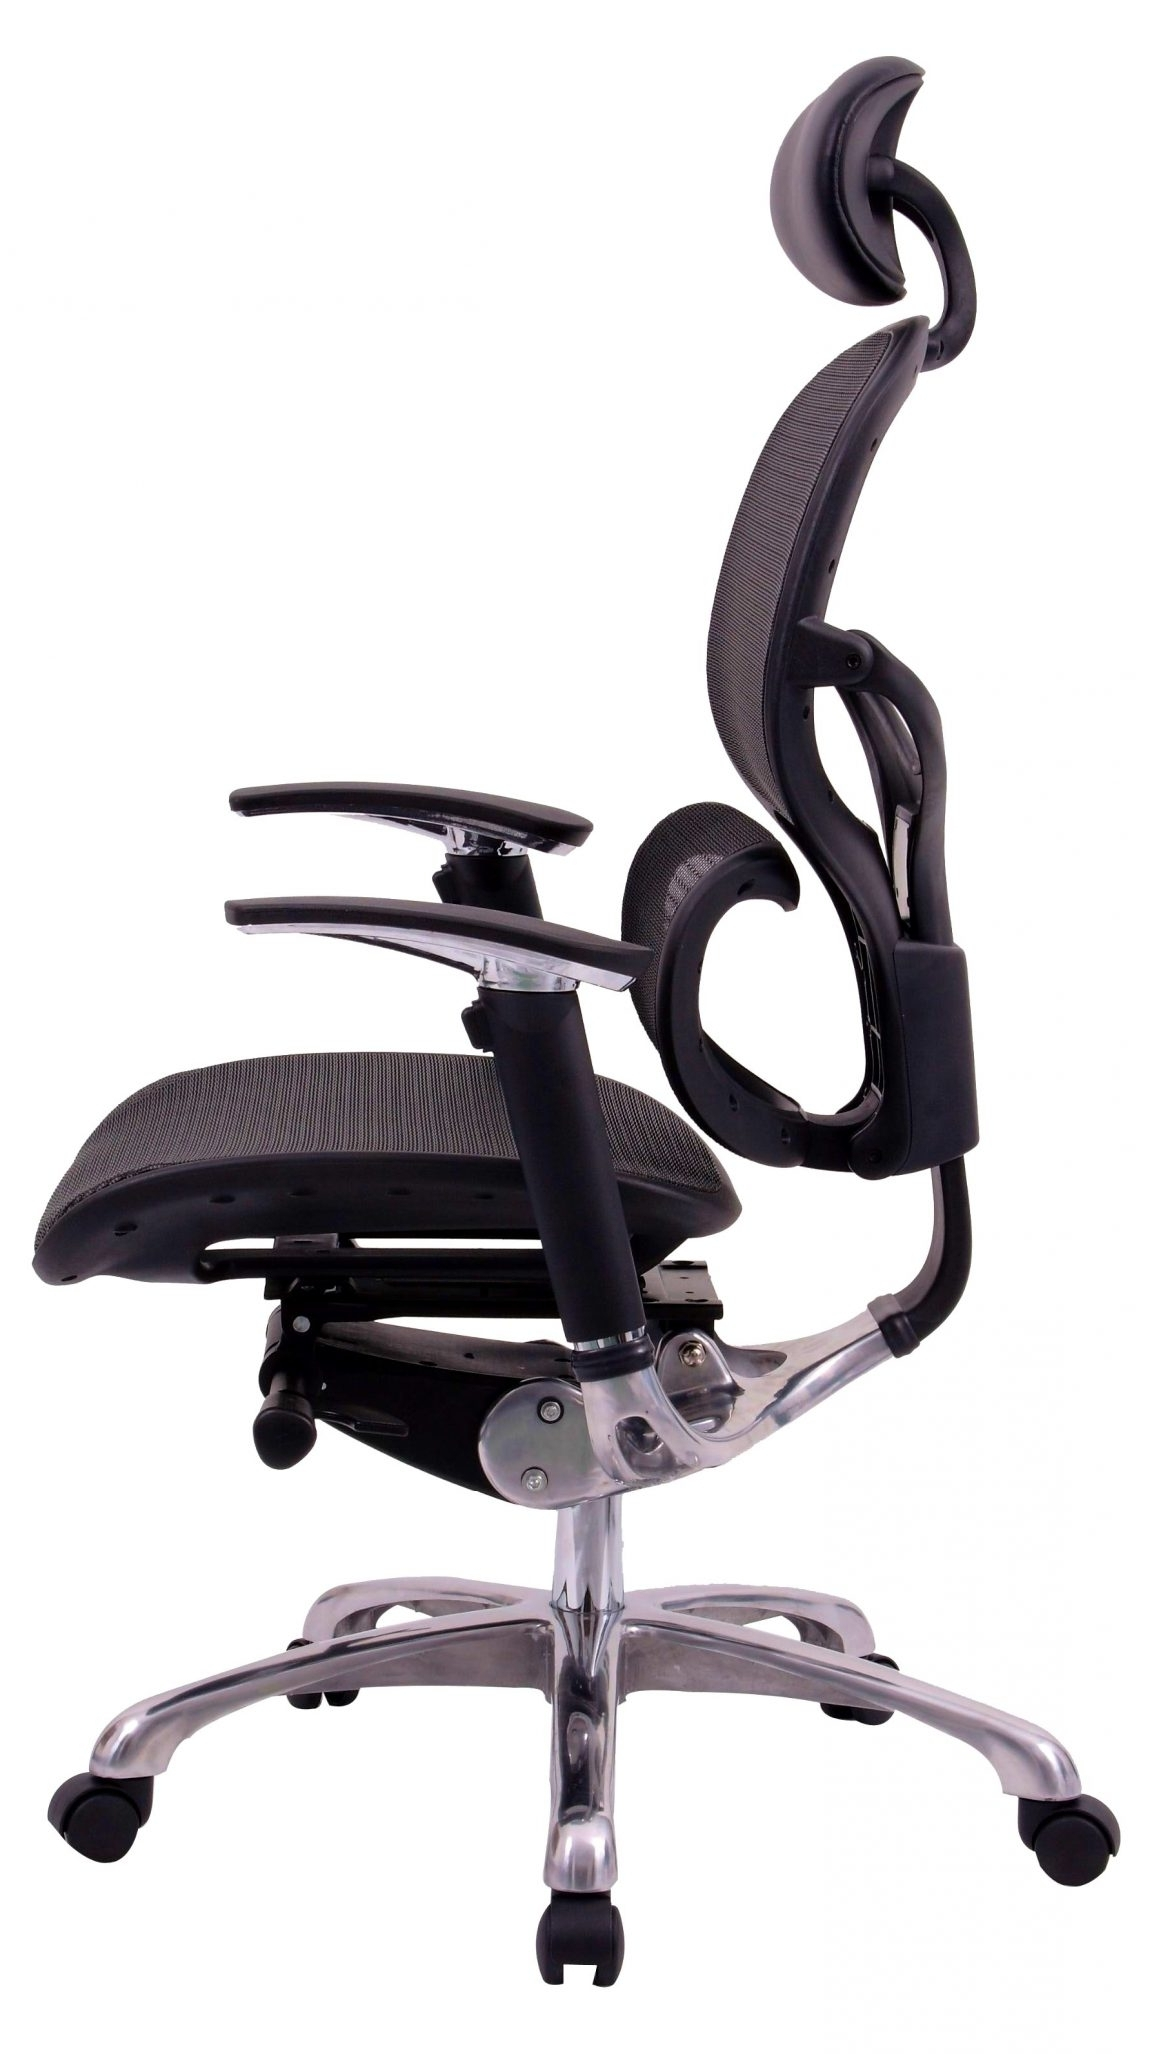 Executive Office Chairs With Back Support Inside Newest Desk Chair Best Executive Office Chairs Australia Ergonomic With (Gallery 1 of 20)